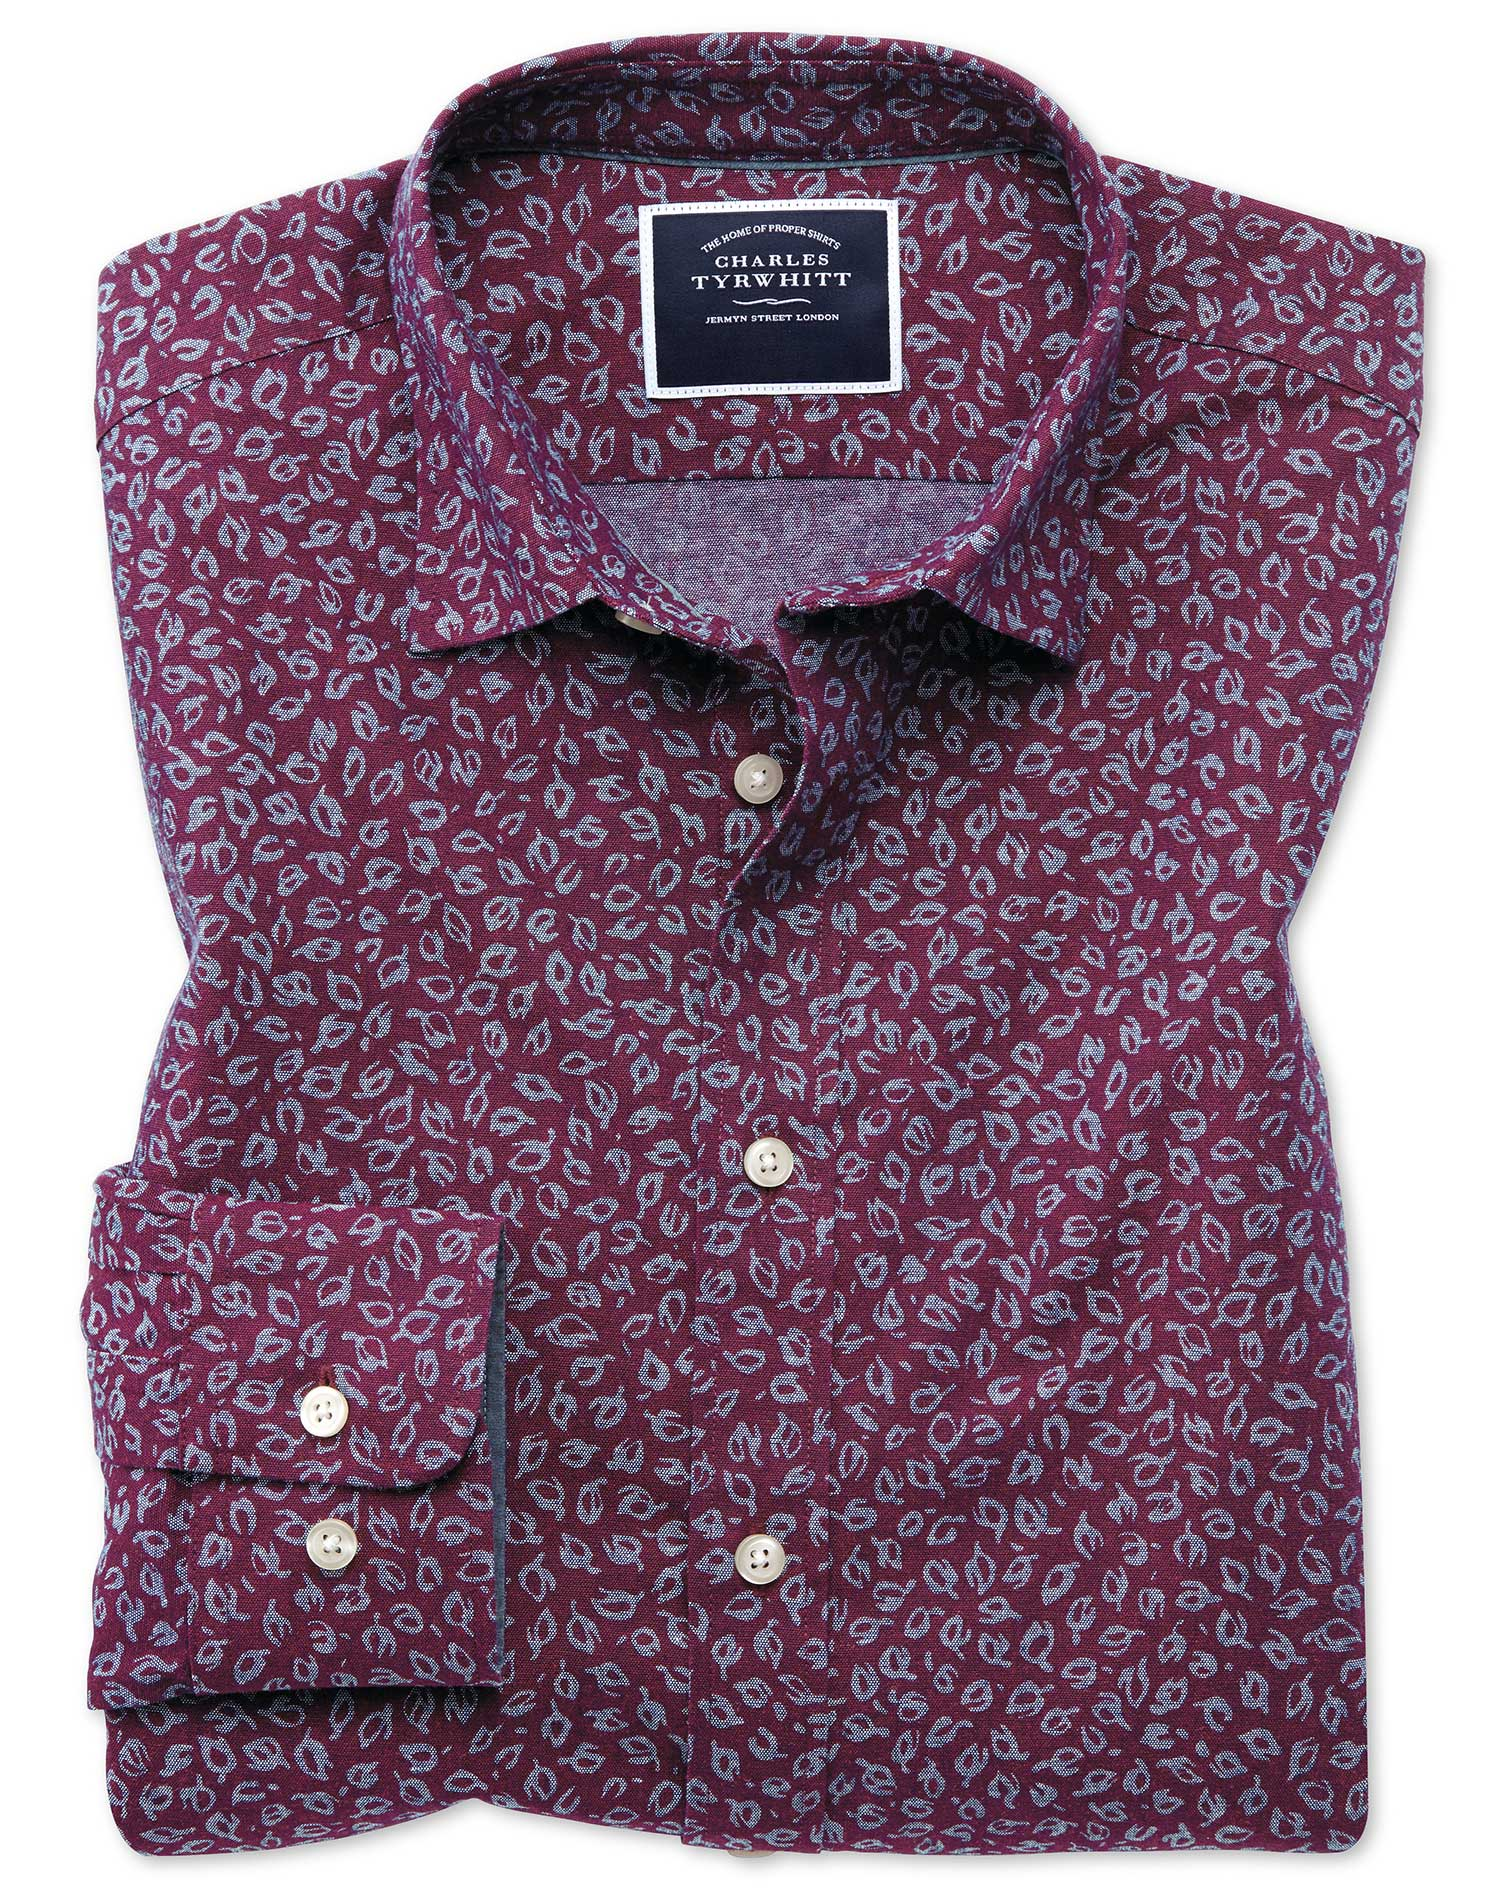 Slim Fit Leaf Print Berry Chambray Cotton Shirt Single Cuff Size Medium by Charles Tyrwhitt